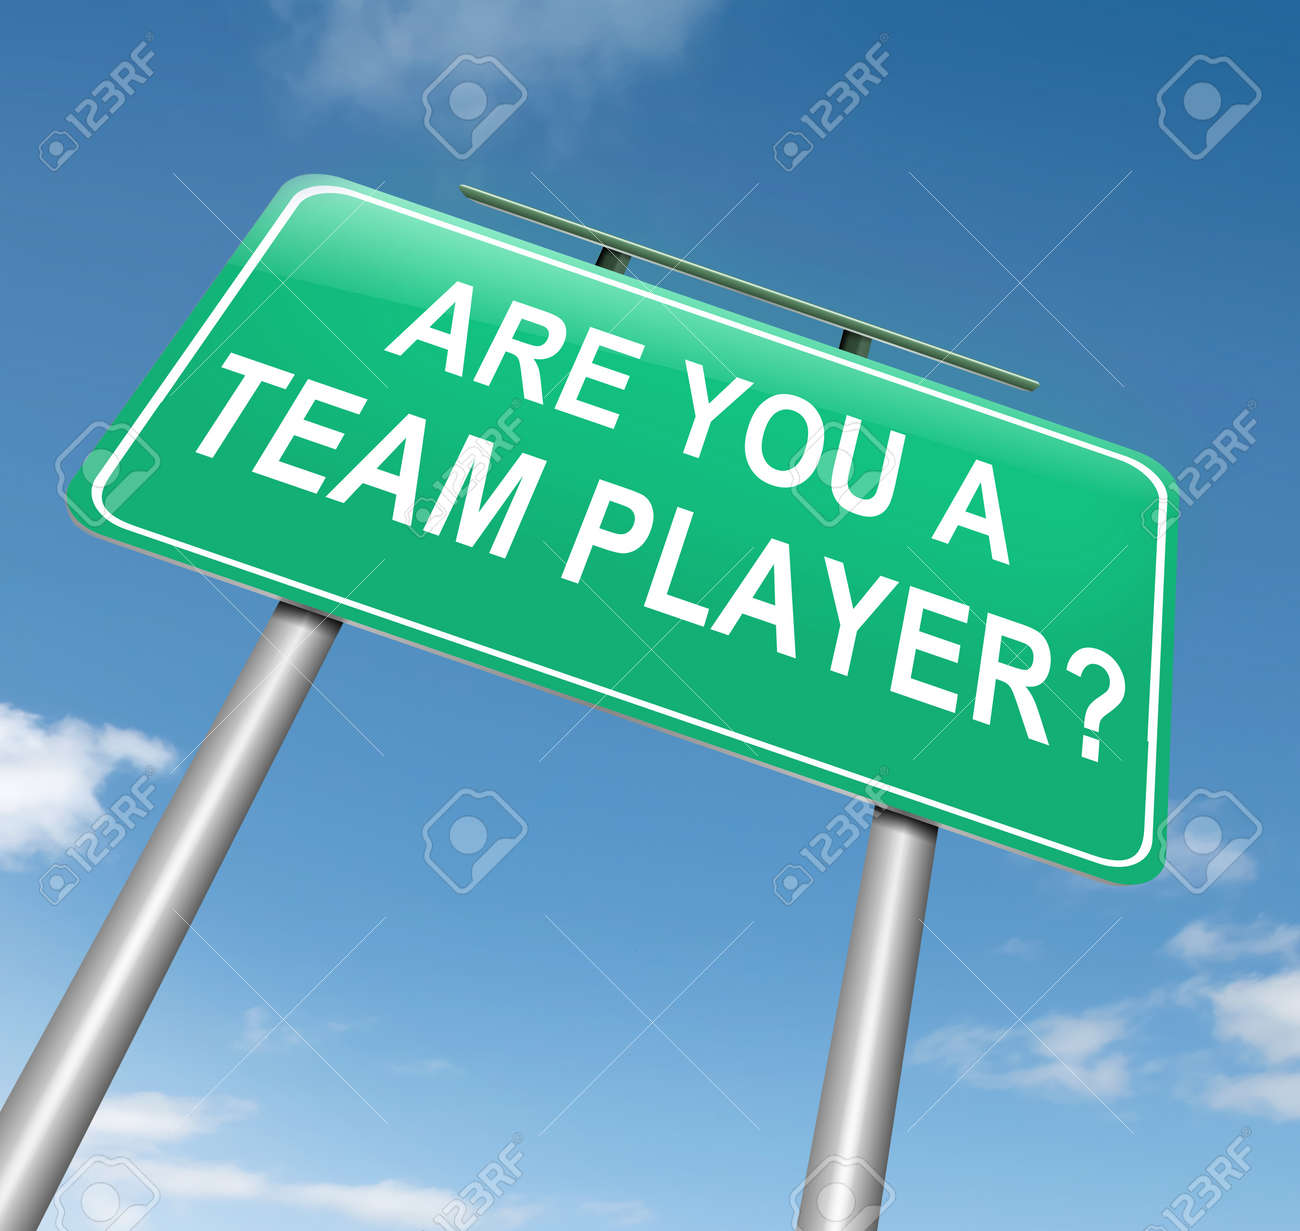 illustration depicting a roadsign a team player concept illustration illustration depicting a roadsign a team player concept blue sky background